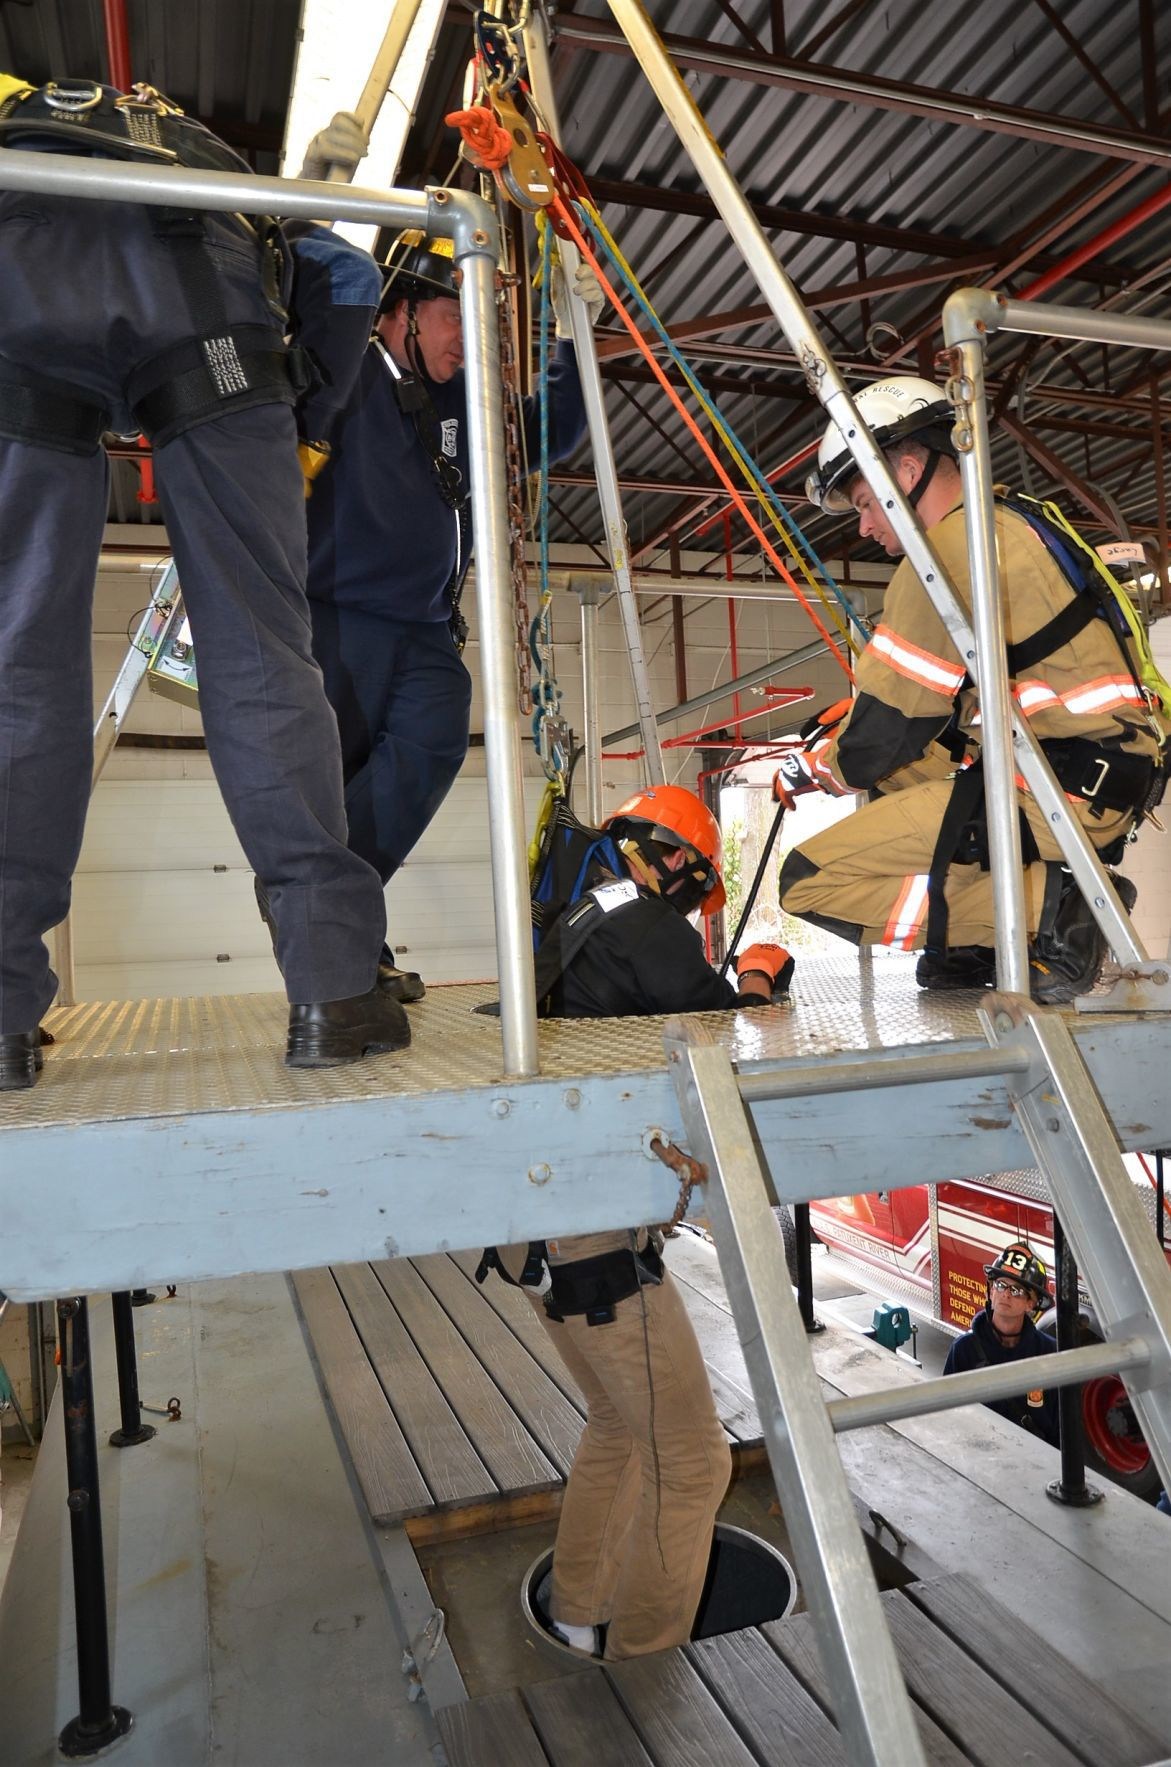 Firefighters Complete Technical Rescue Confined Space